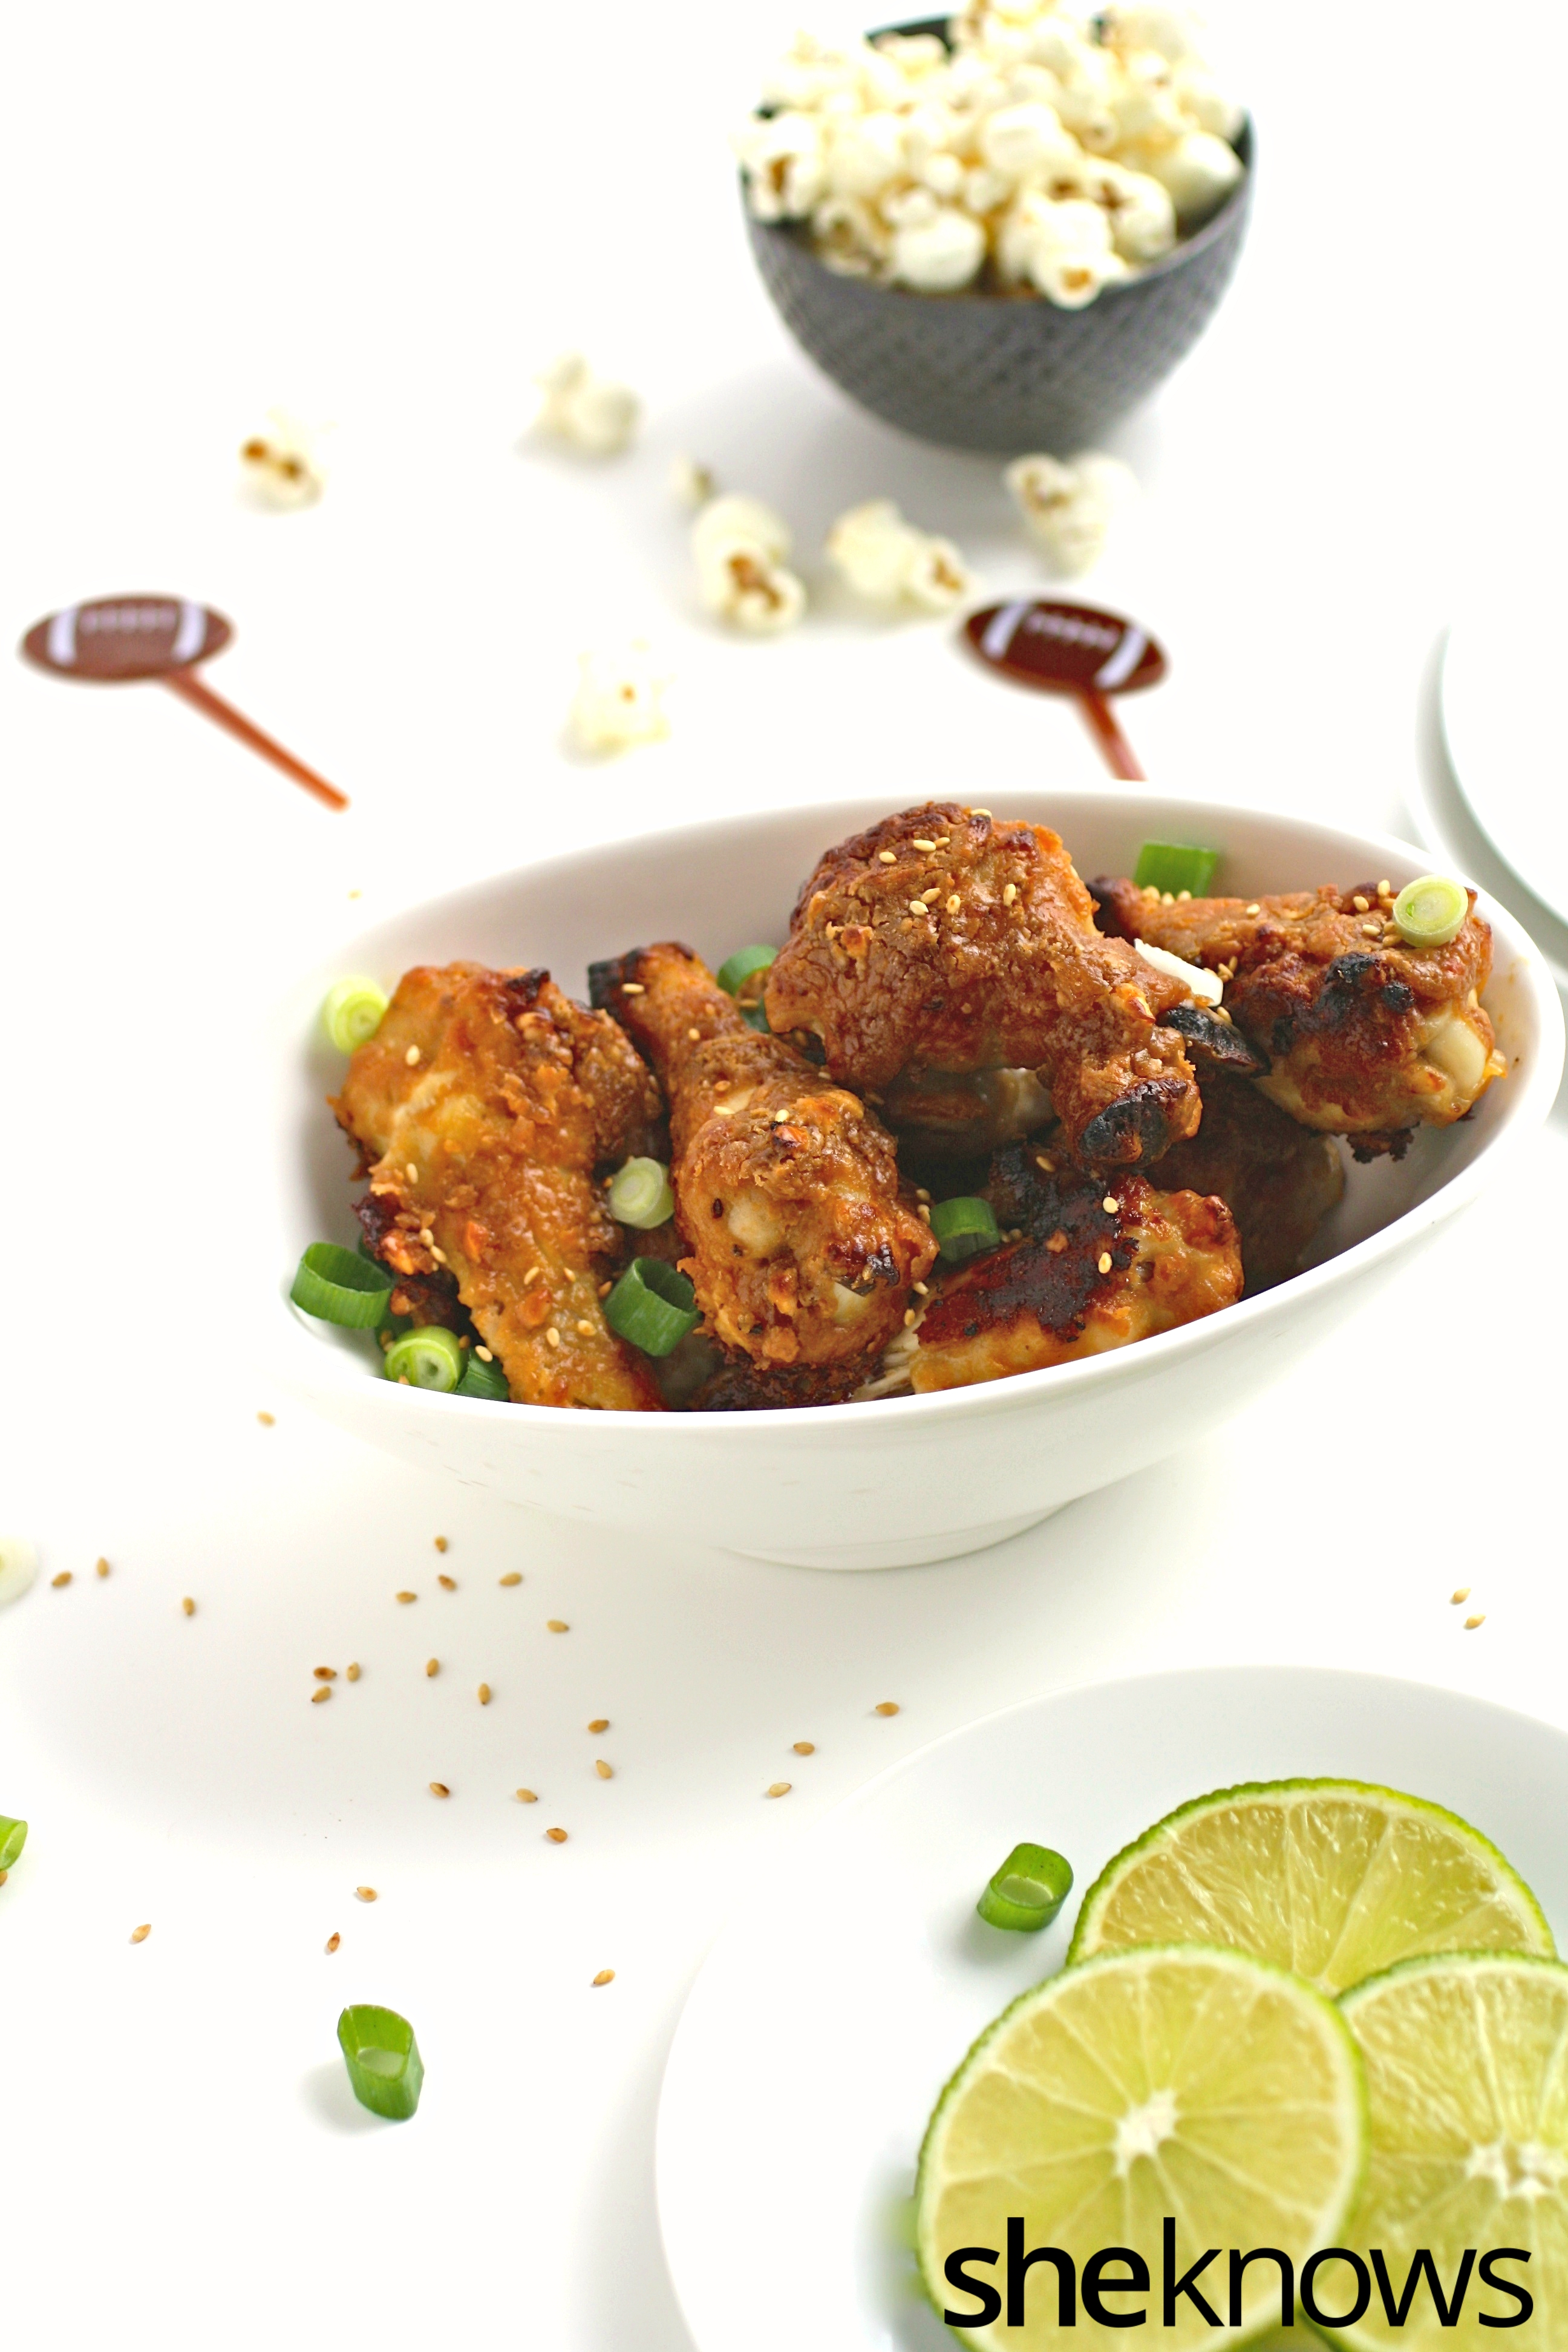 Gather round for a fun and flavorful appetizer, perfect to serve on game day: peanutty Thai-inspired, baked chicken wings